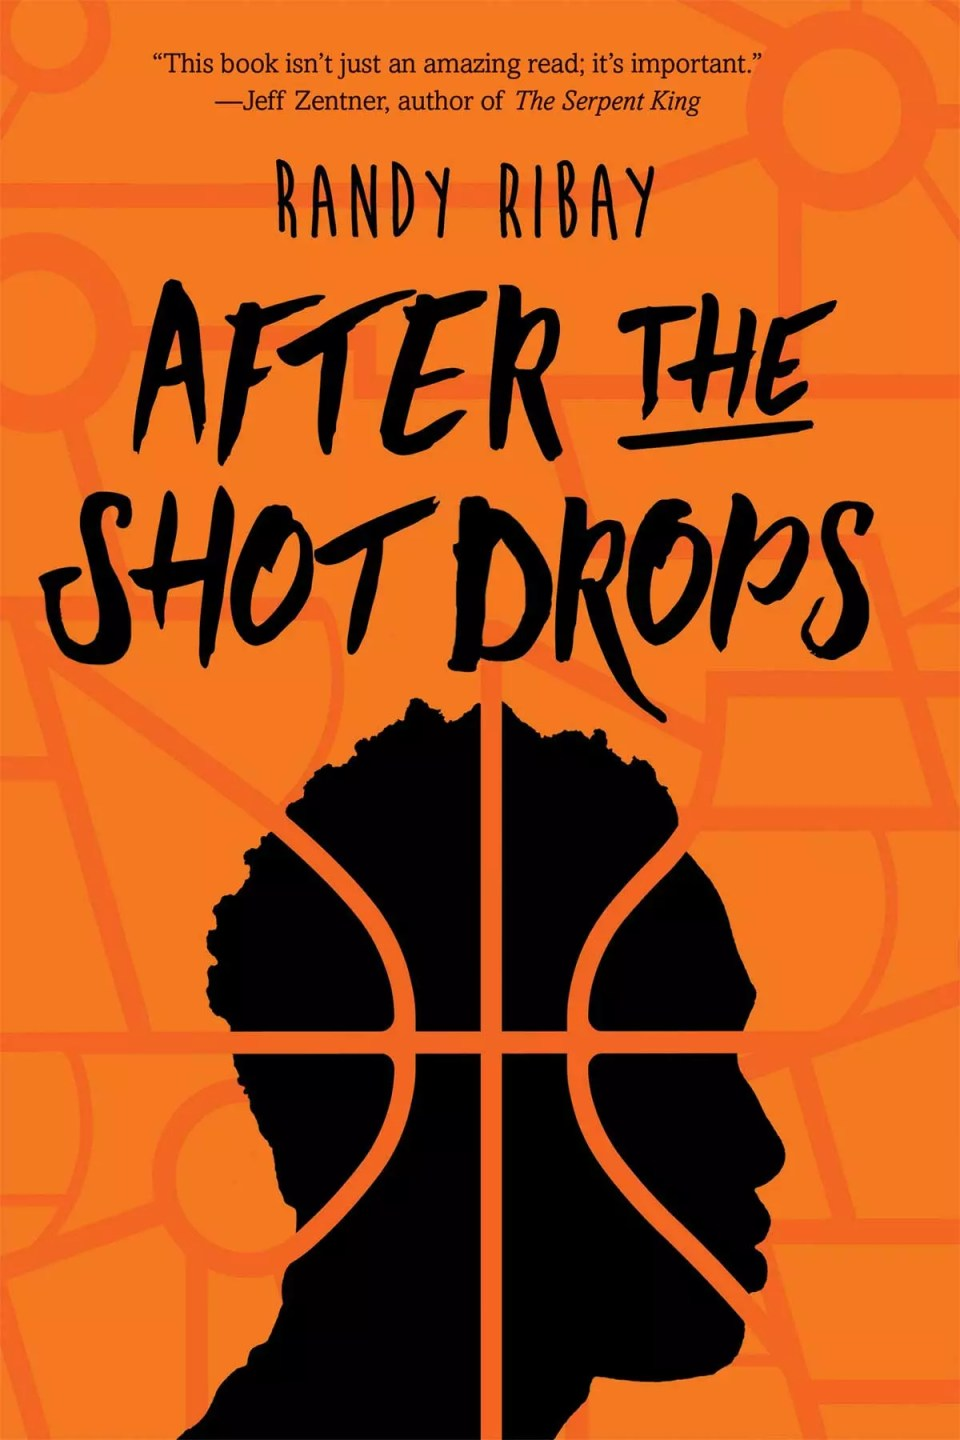 After the Shot Drops by Randy Ribay is the latest YA novel with true-to-life life dealing with race and culture, friendship, and basketball. #BookReview #YA